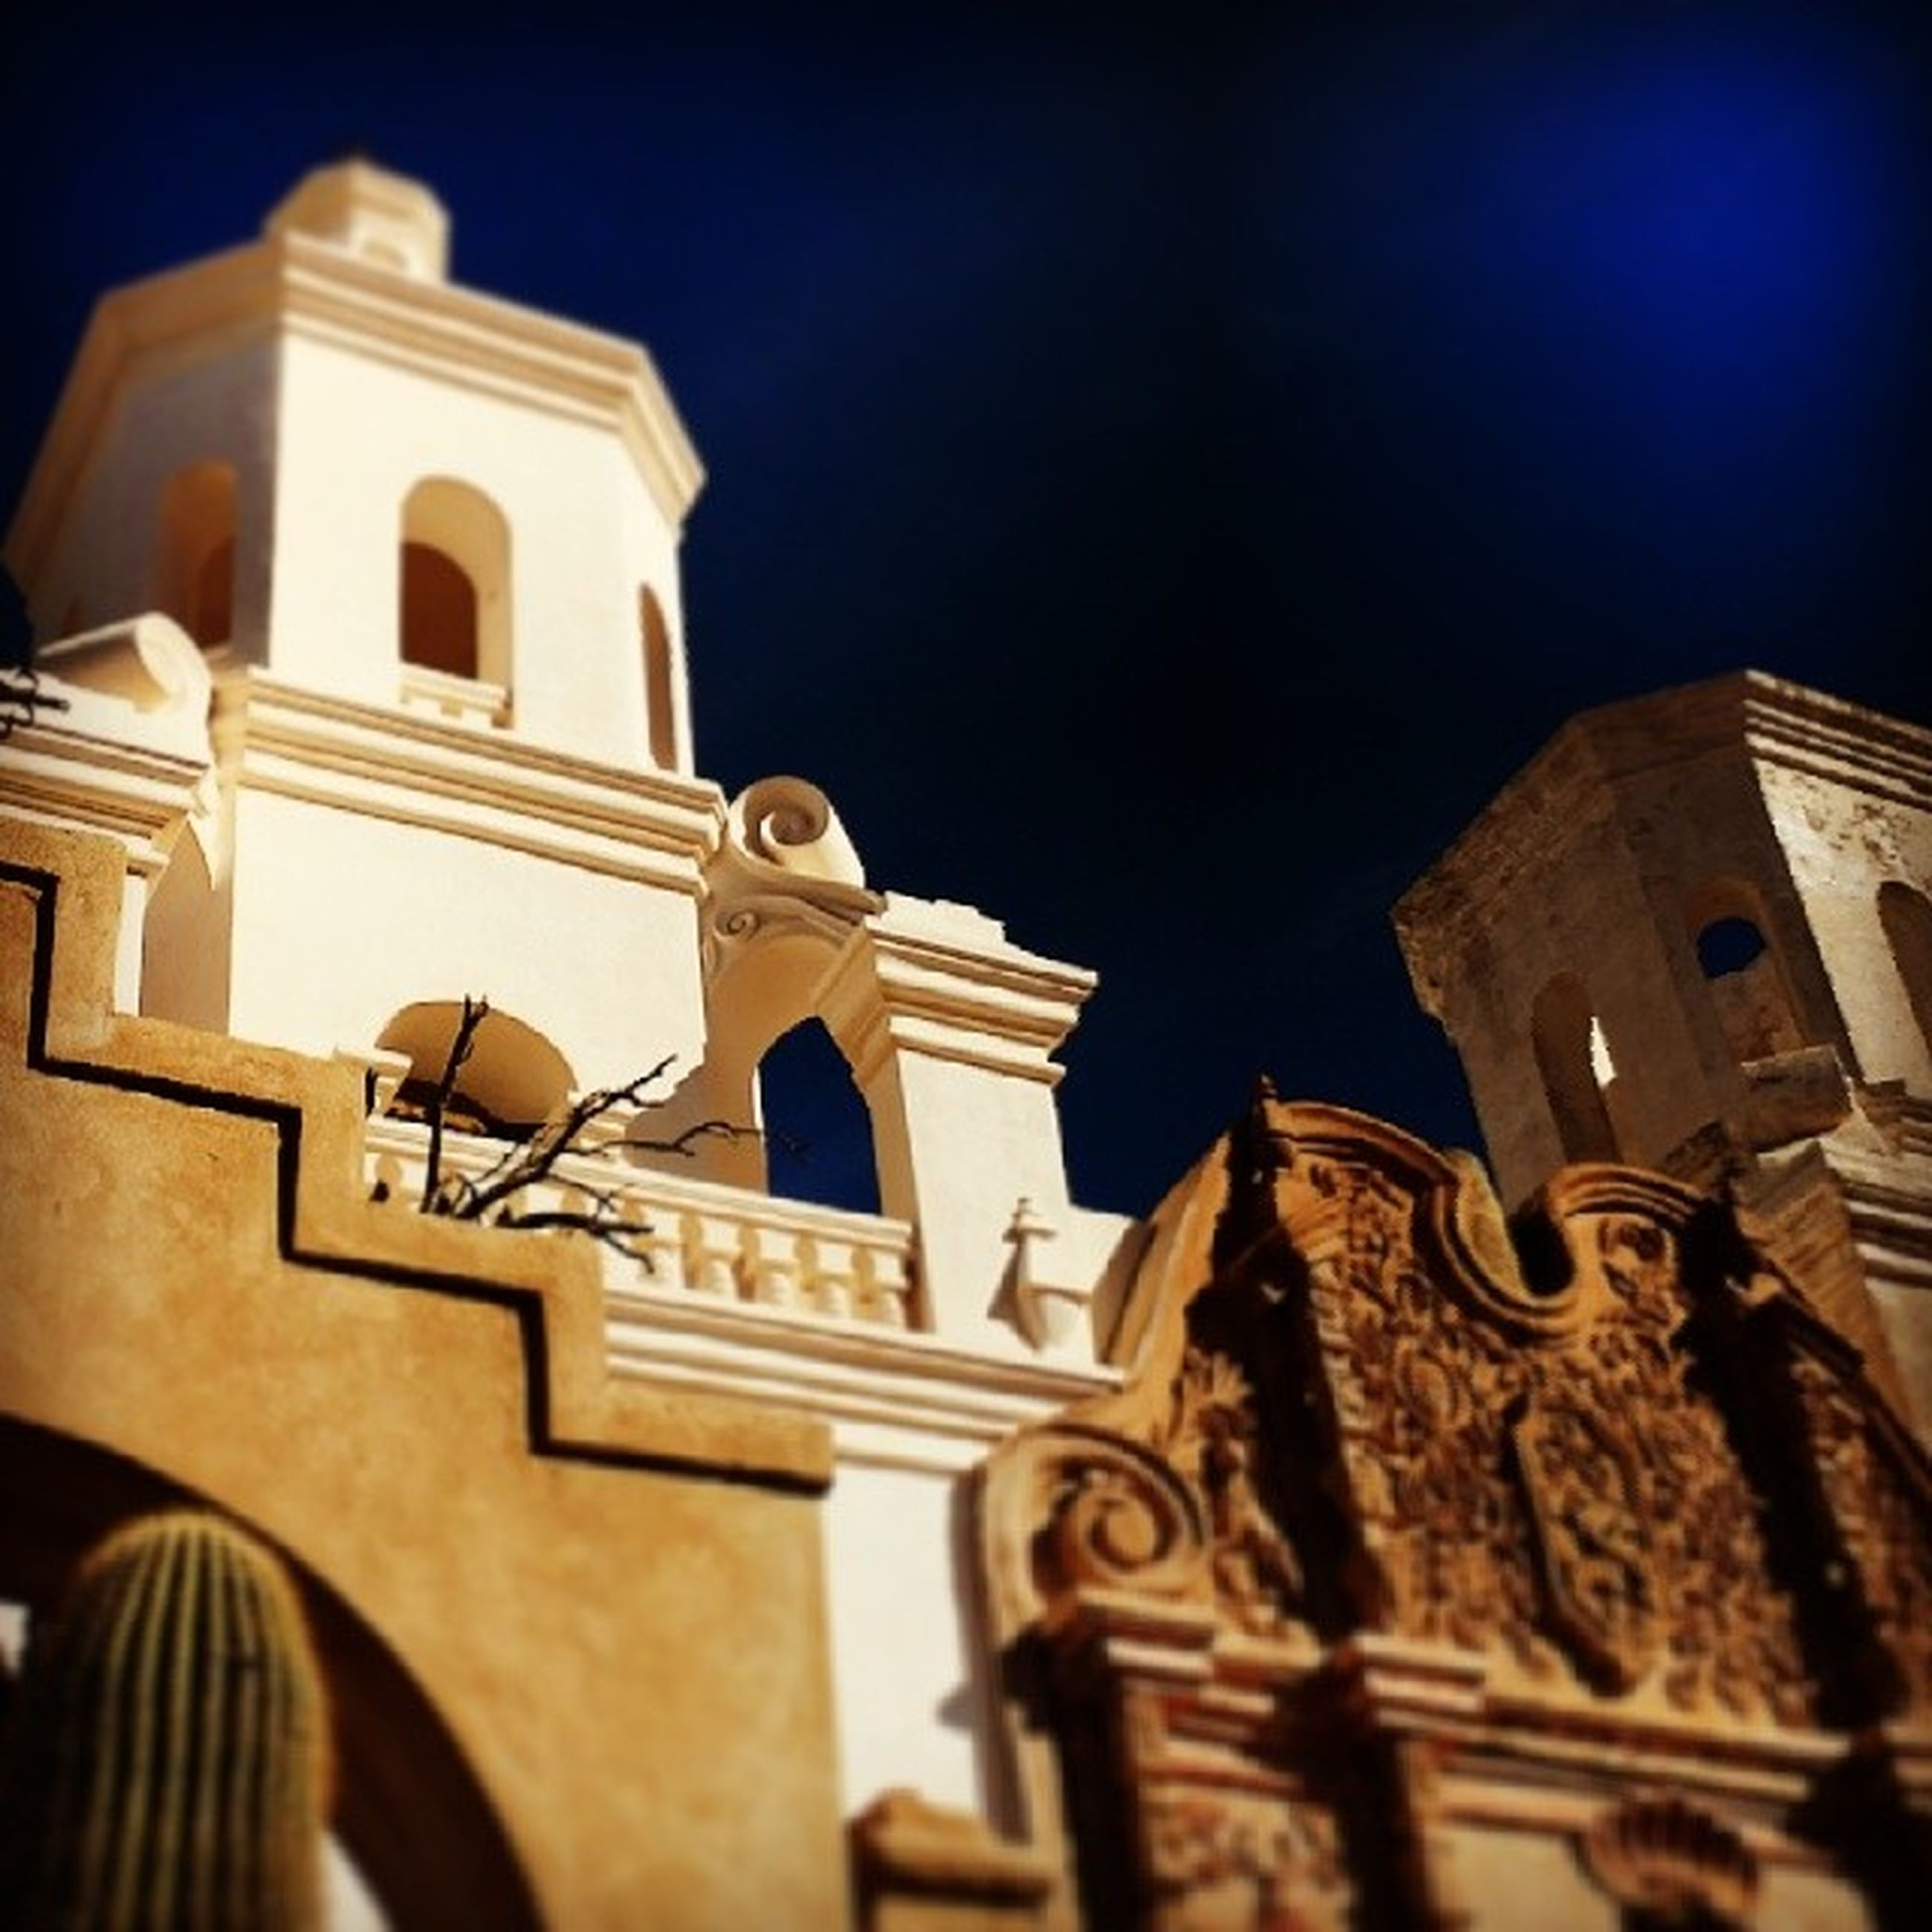 building exterior, architecture, built structure, religion, low angle view, church, place of worship, spirituality, cross, cathedral, clear sky, high section, no people, night, sky, outdoors, old, history